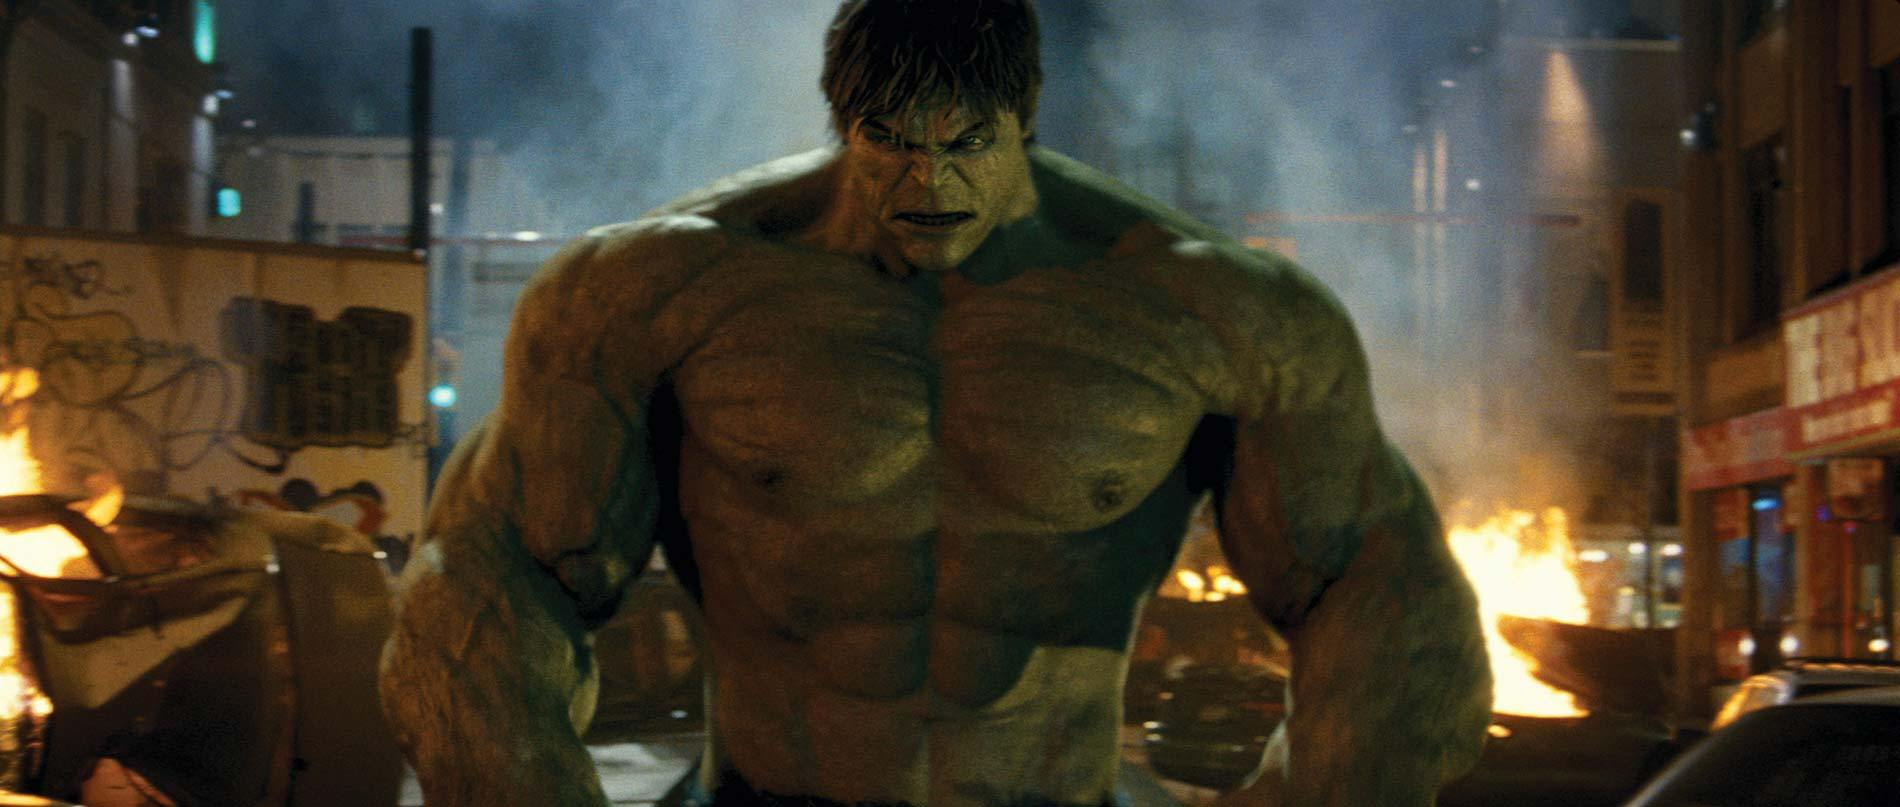 The Incredibl(y Mundane) Hulk